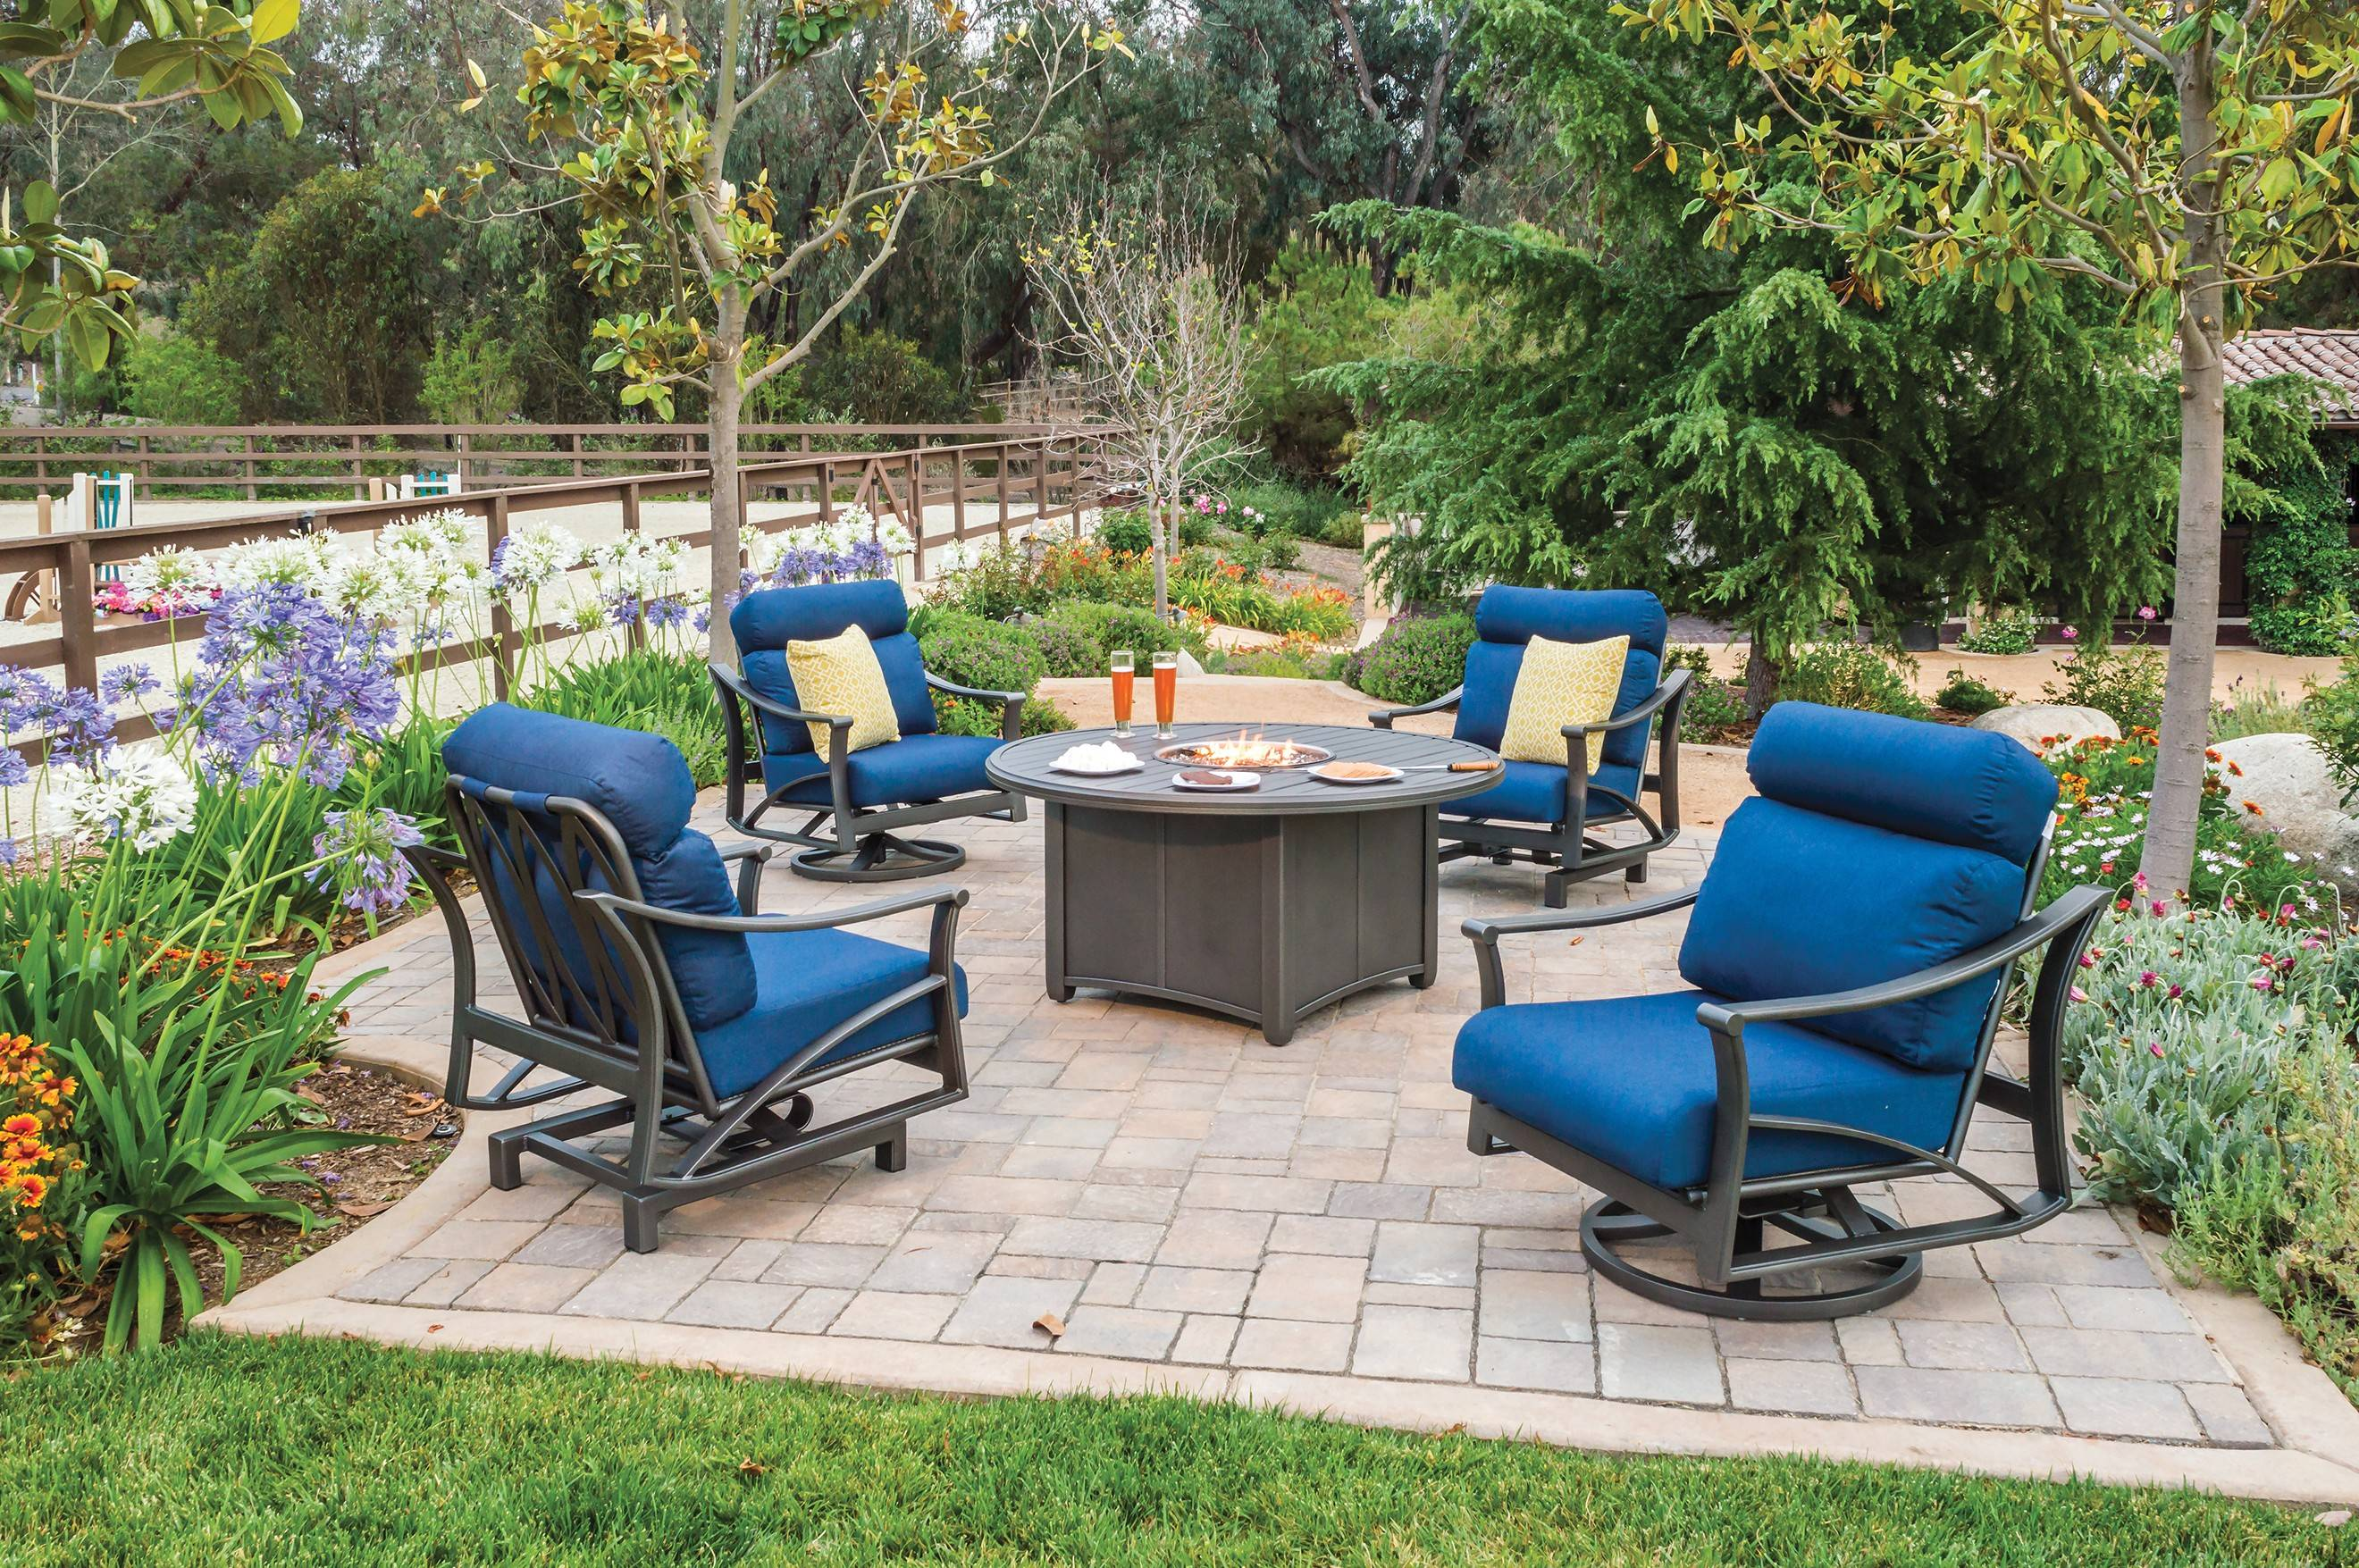 Modern Fabrics And Designs Allow Outdoor Seat Cushions To Withstand The  Rain.